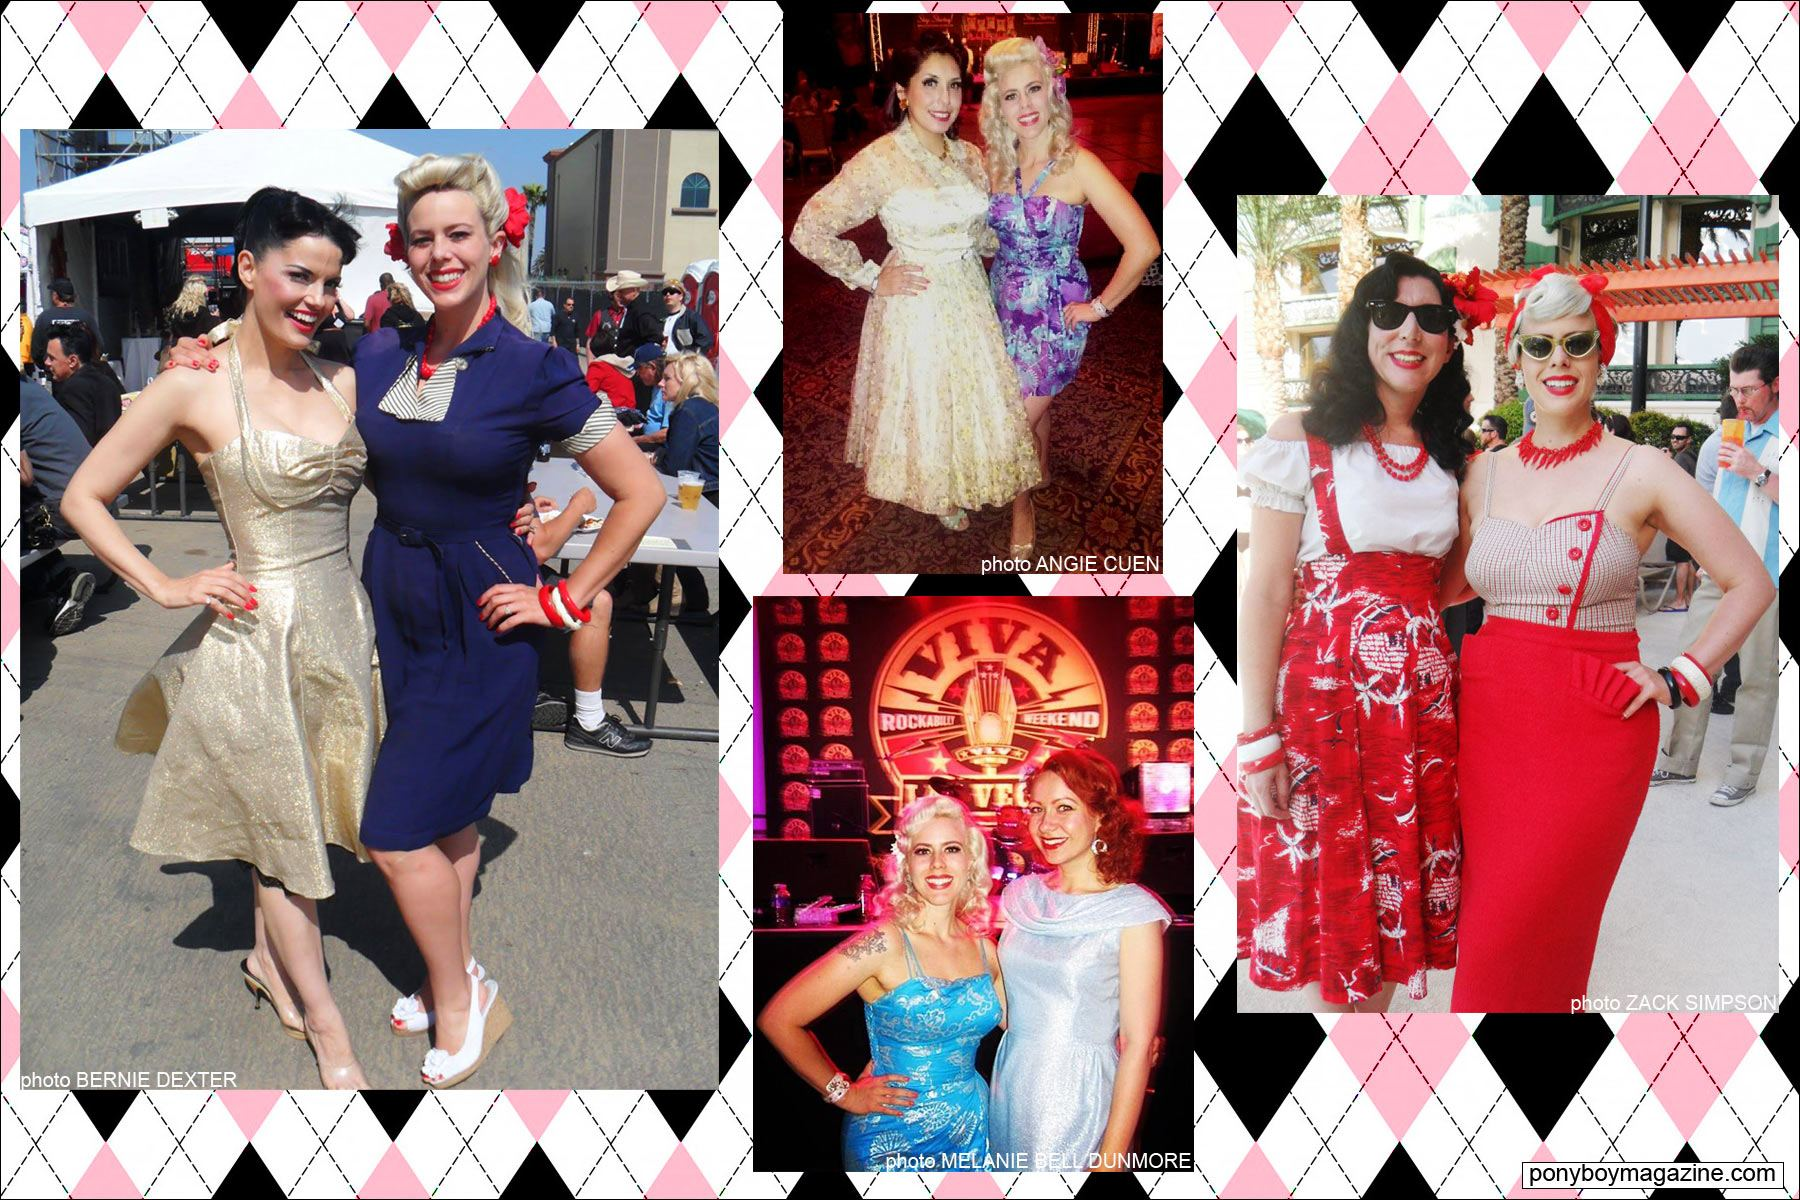 The Rockabilly Socialite, with various girlfriends at events. Ponyboy Magazine.